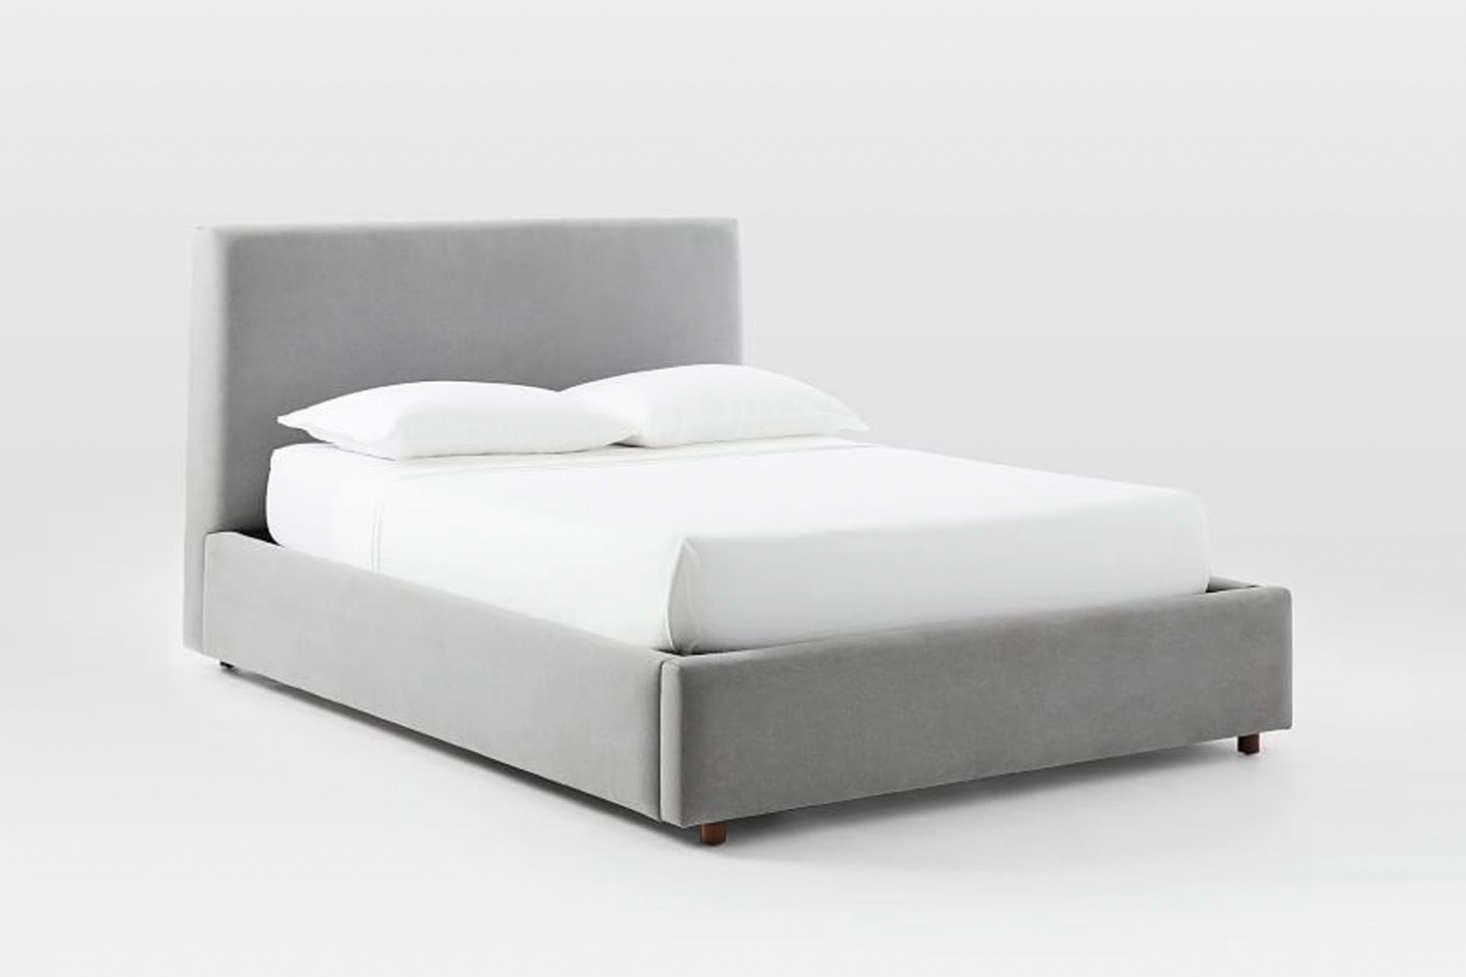 The Haven Storage Bed ranges from $src=